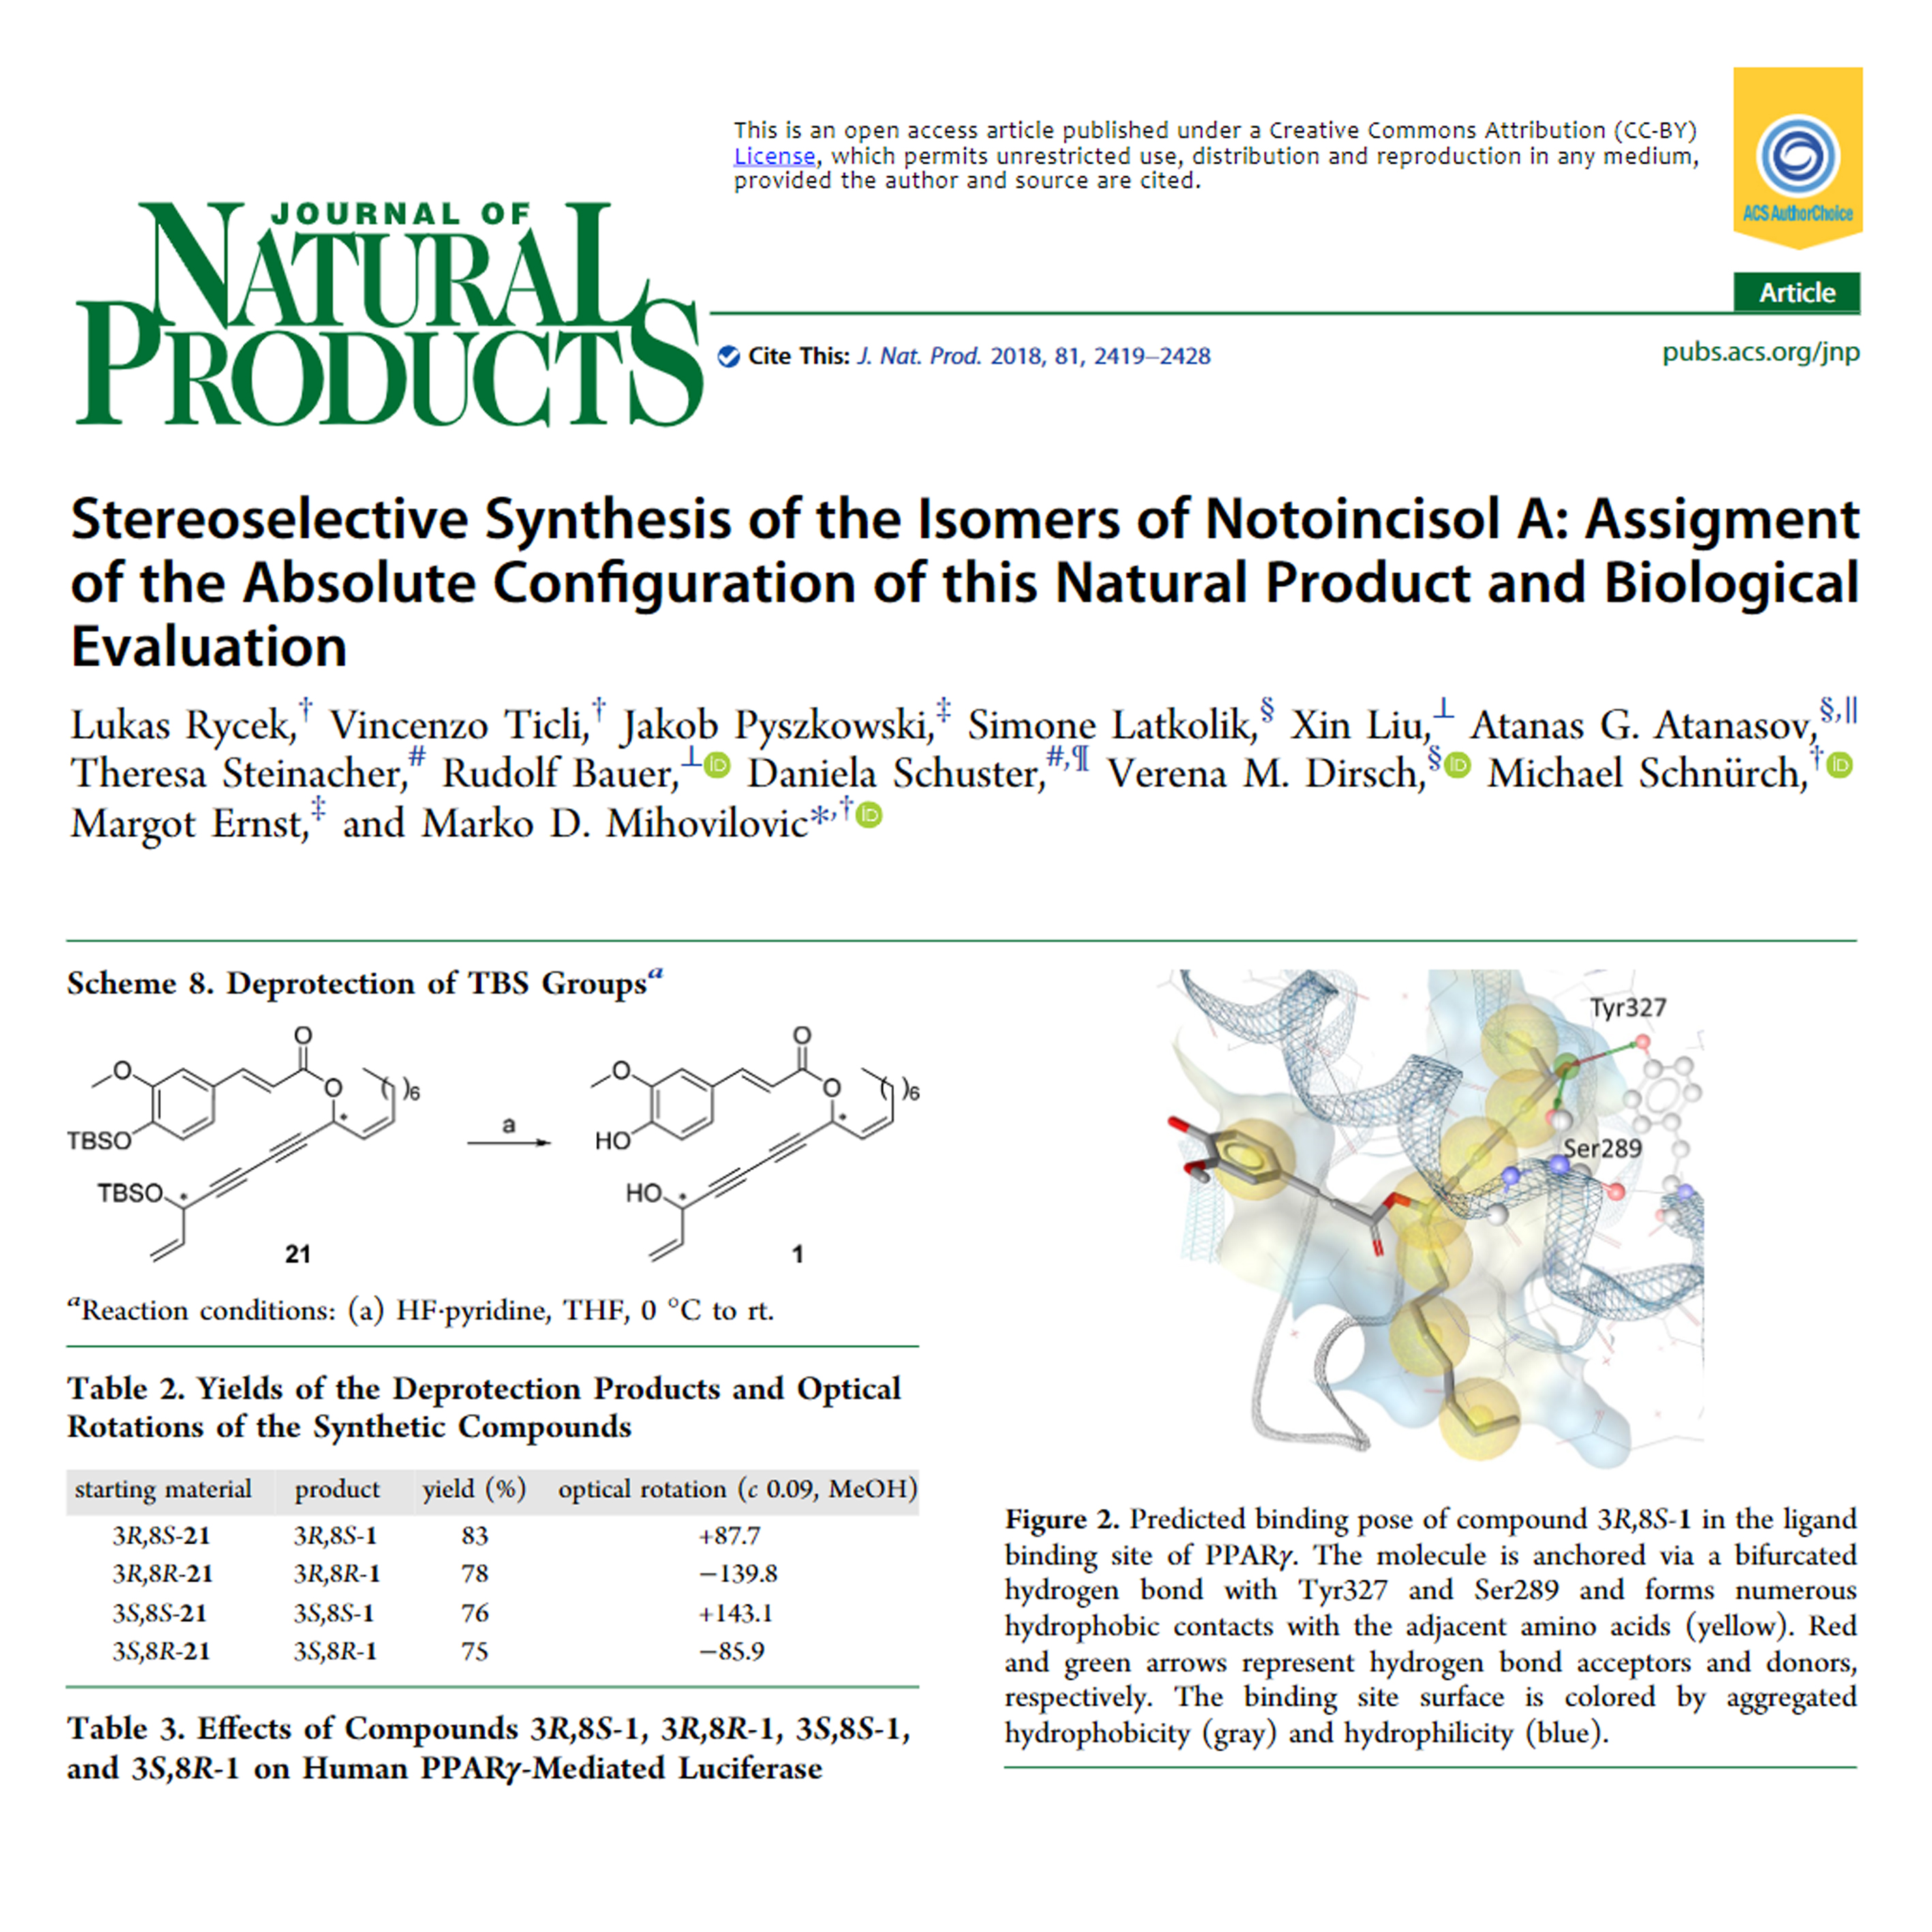 Stereoselective Synthesis of the Isomers of Notoincisol A: Assigment of the Absolute Configuration of this Natural Product and Biological Evaluation